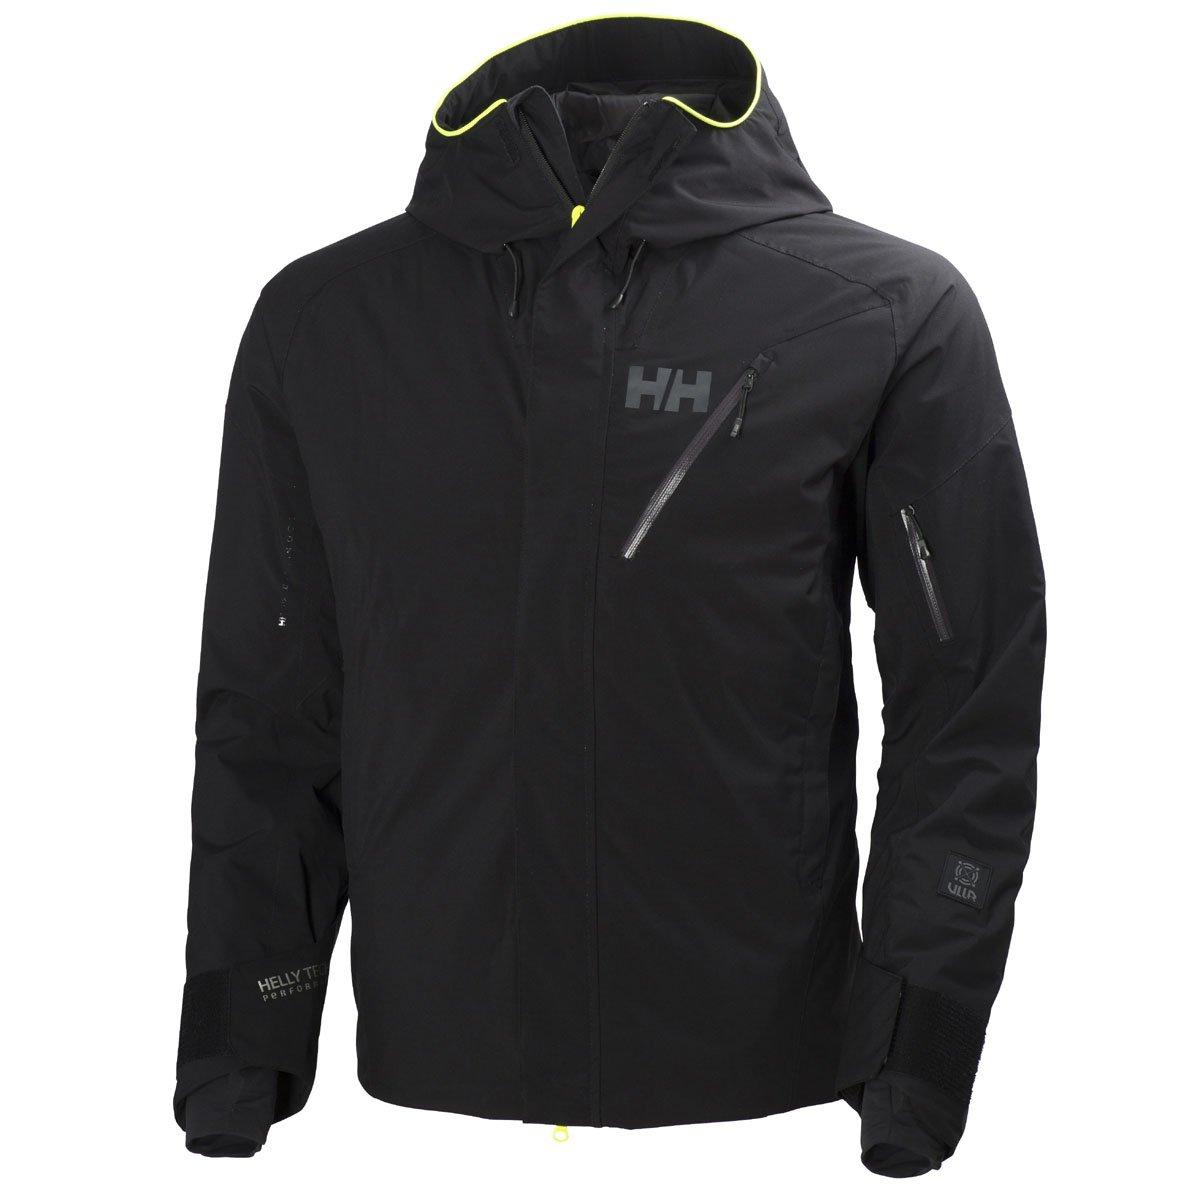 helly hansen herren jacke falline jacket online kaufen. Black Bedroom Furniture Sets. Home Design Ideas